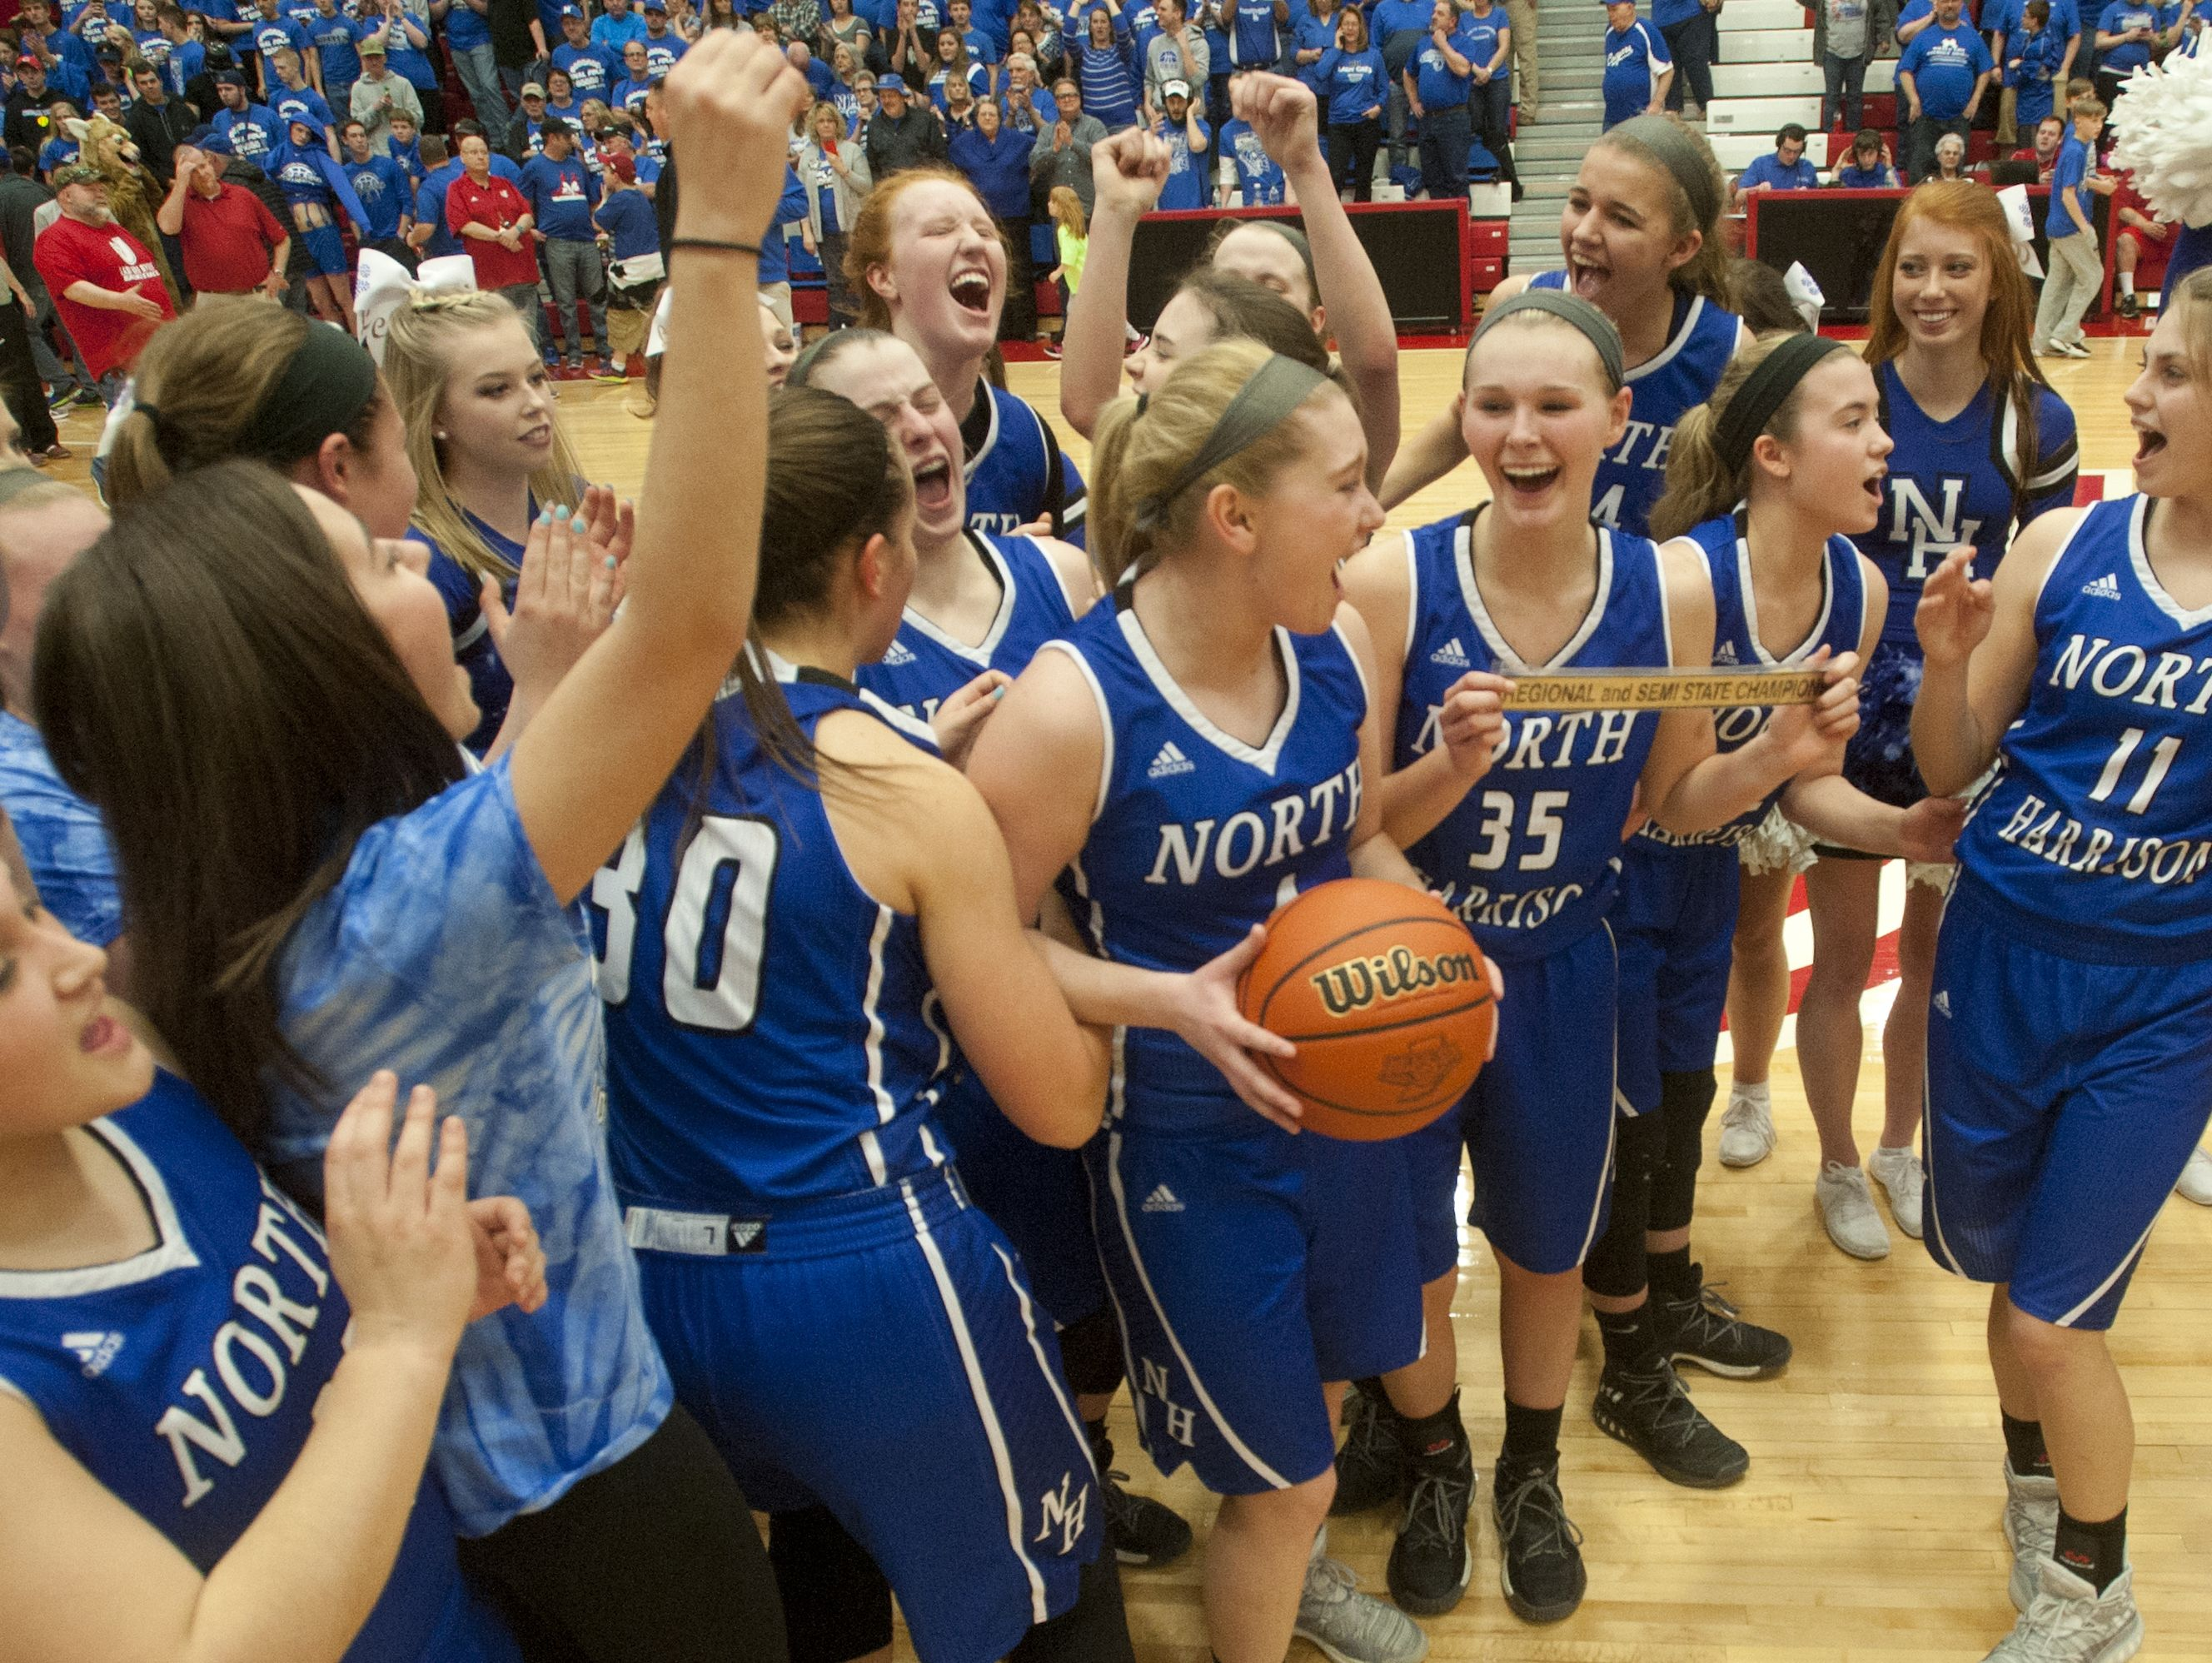 North Harrison celebrates their defeat of Danville (In.,) 65-43, in the IHSAA 3A Girls Basketball Semi-State. 18 February 2017